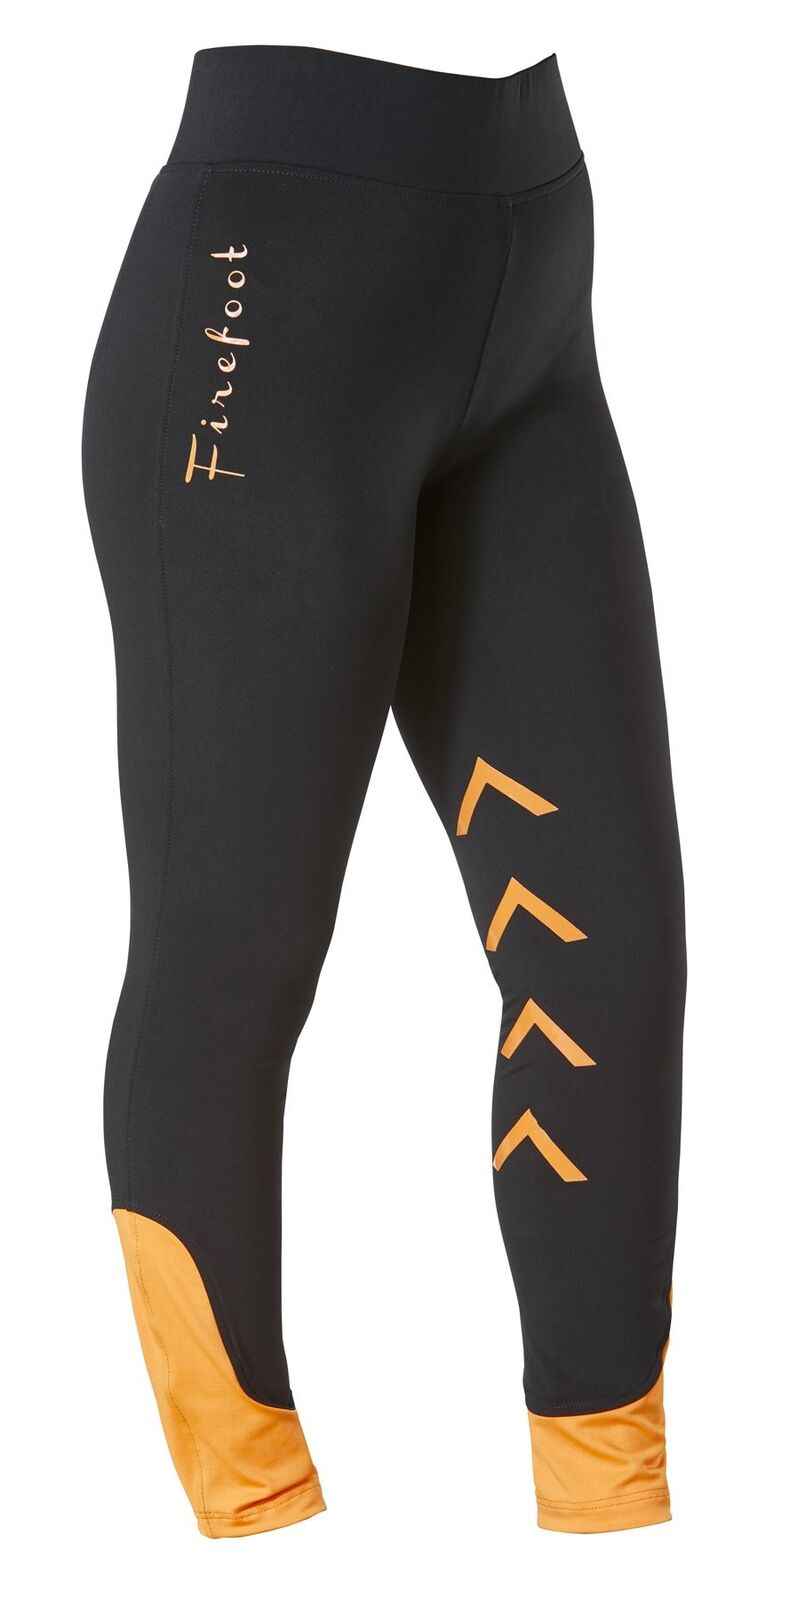 FireFoot Fleece Lined Ripon Ladies Horse Riding Silicone Stretch Legging Breech